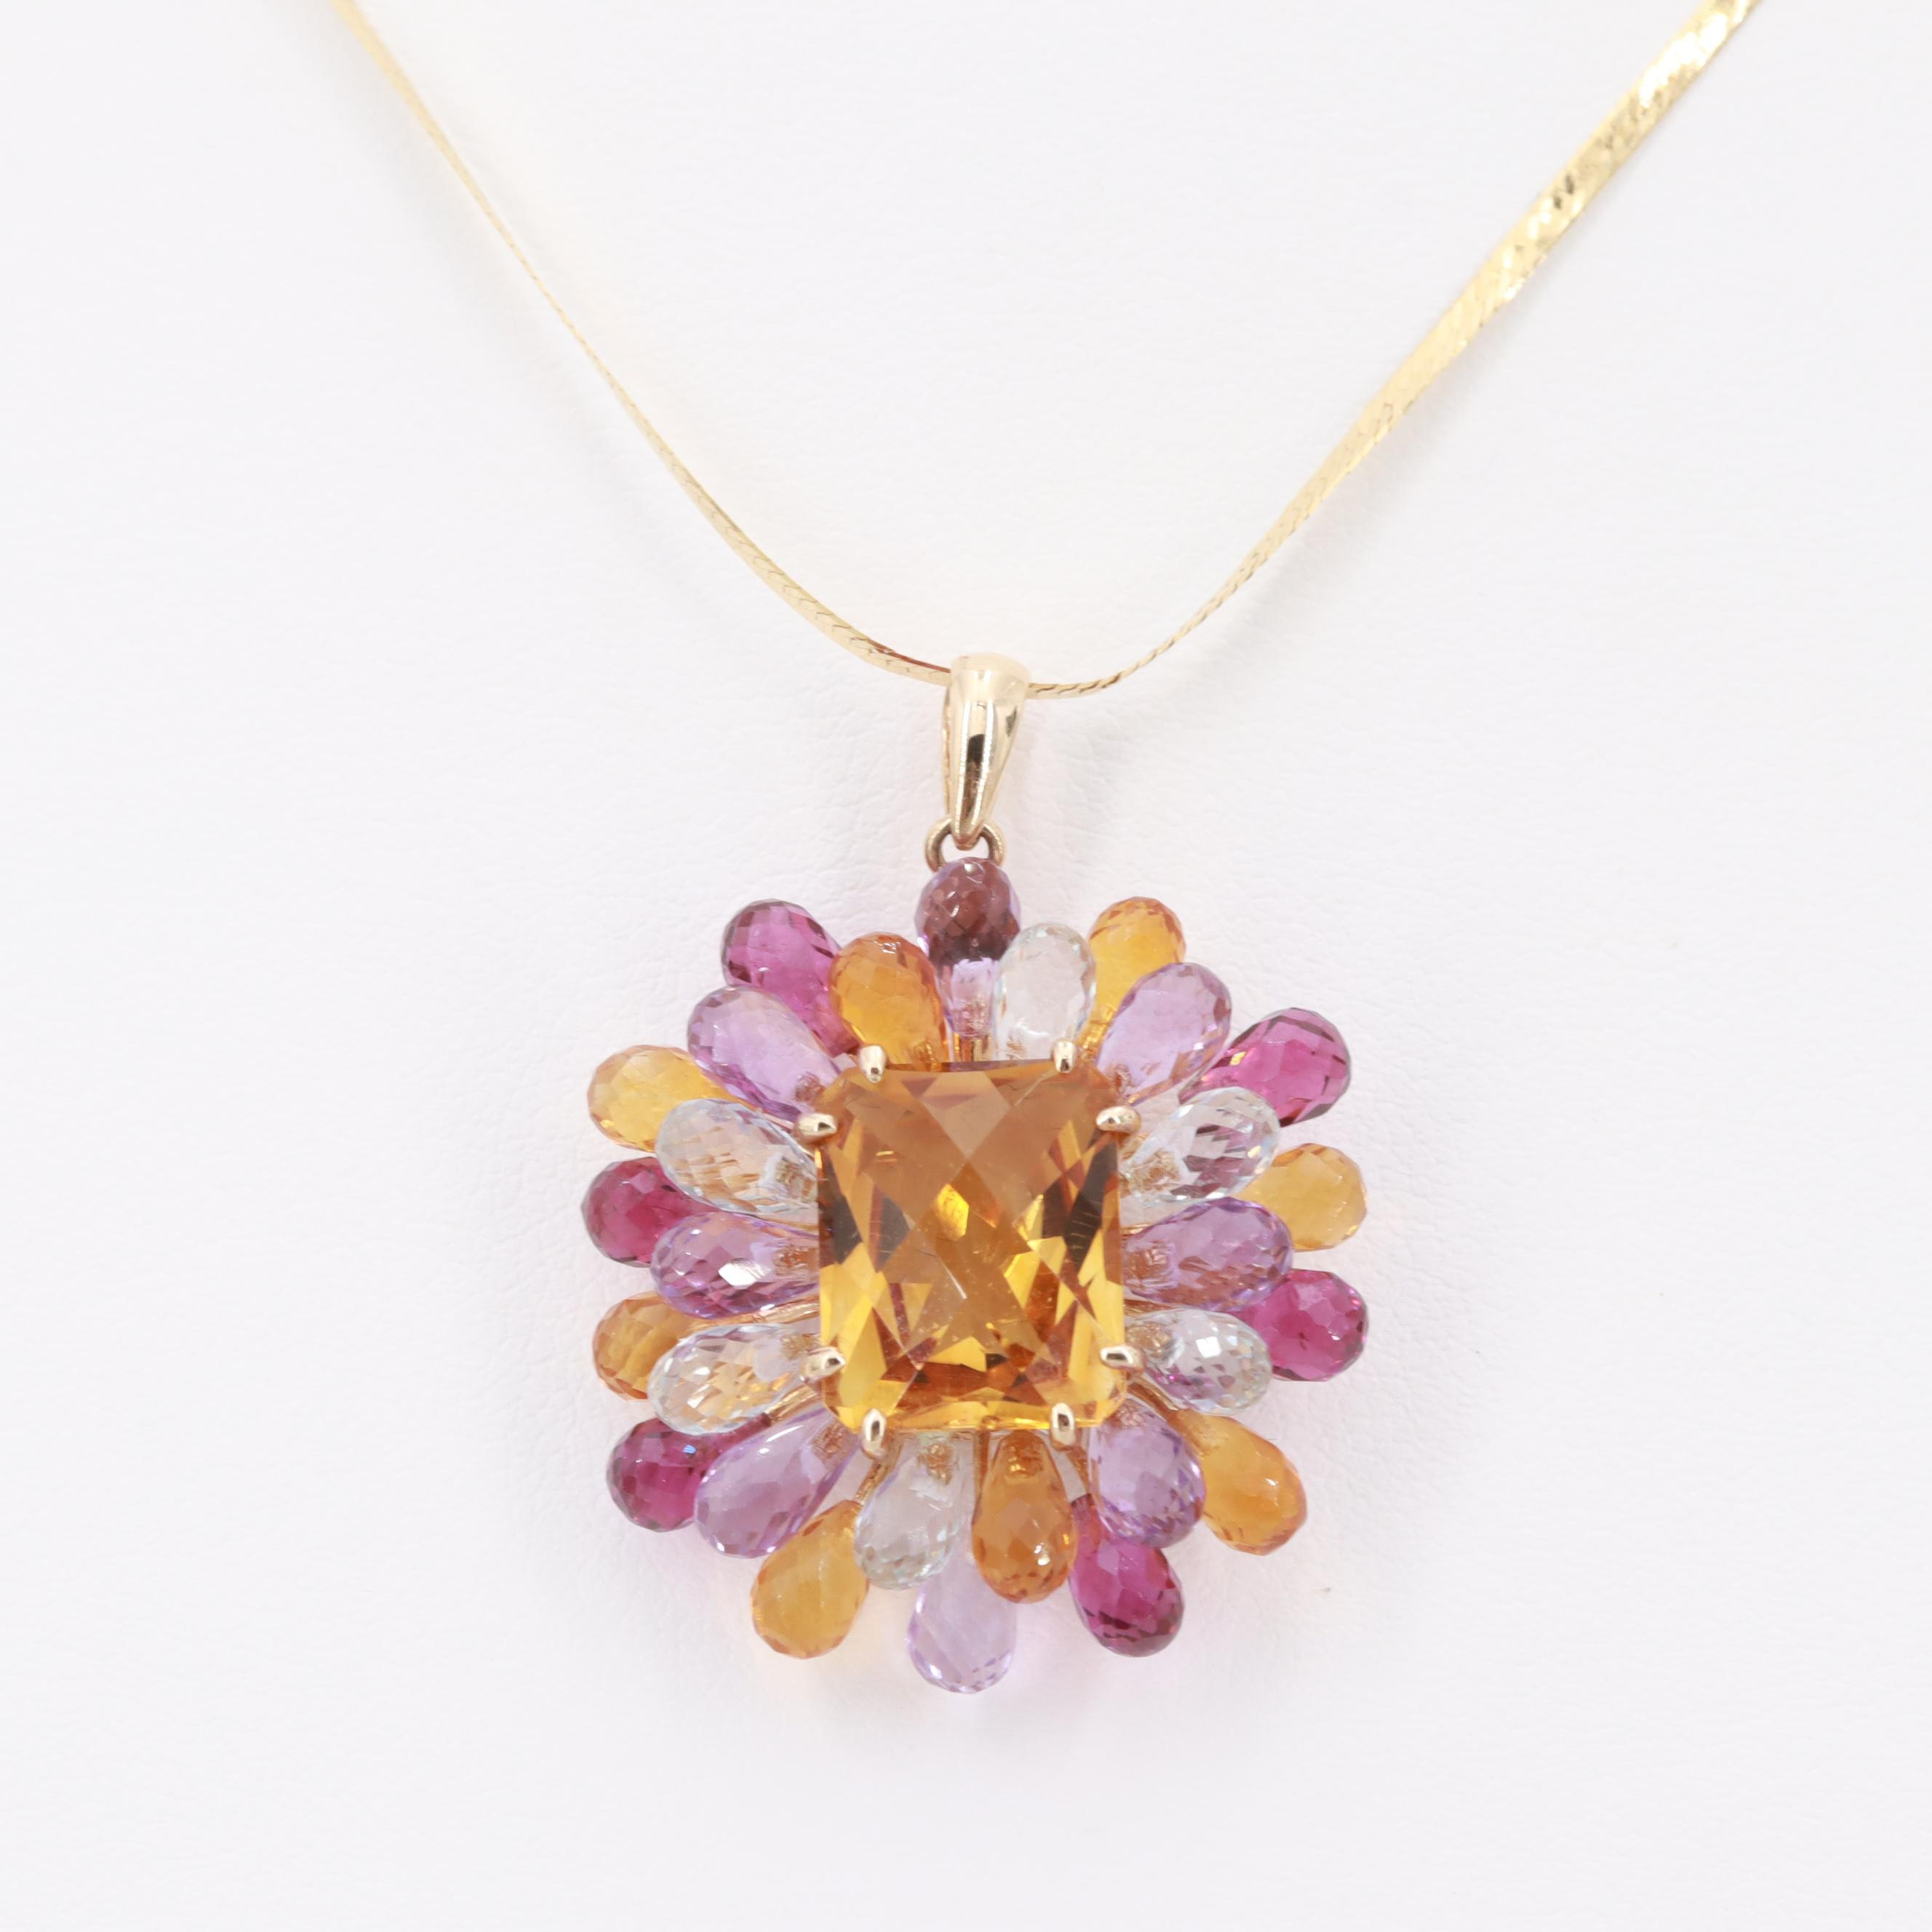 14K Yellow Gold Citrine, Amethyst and Topaz Necklace